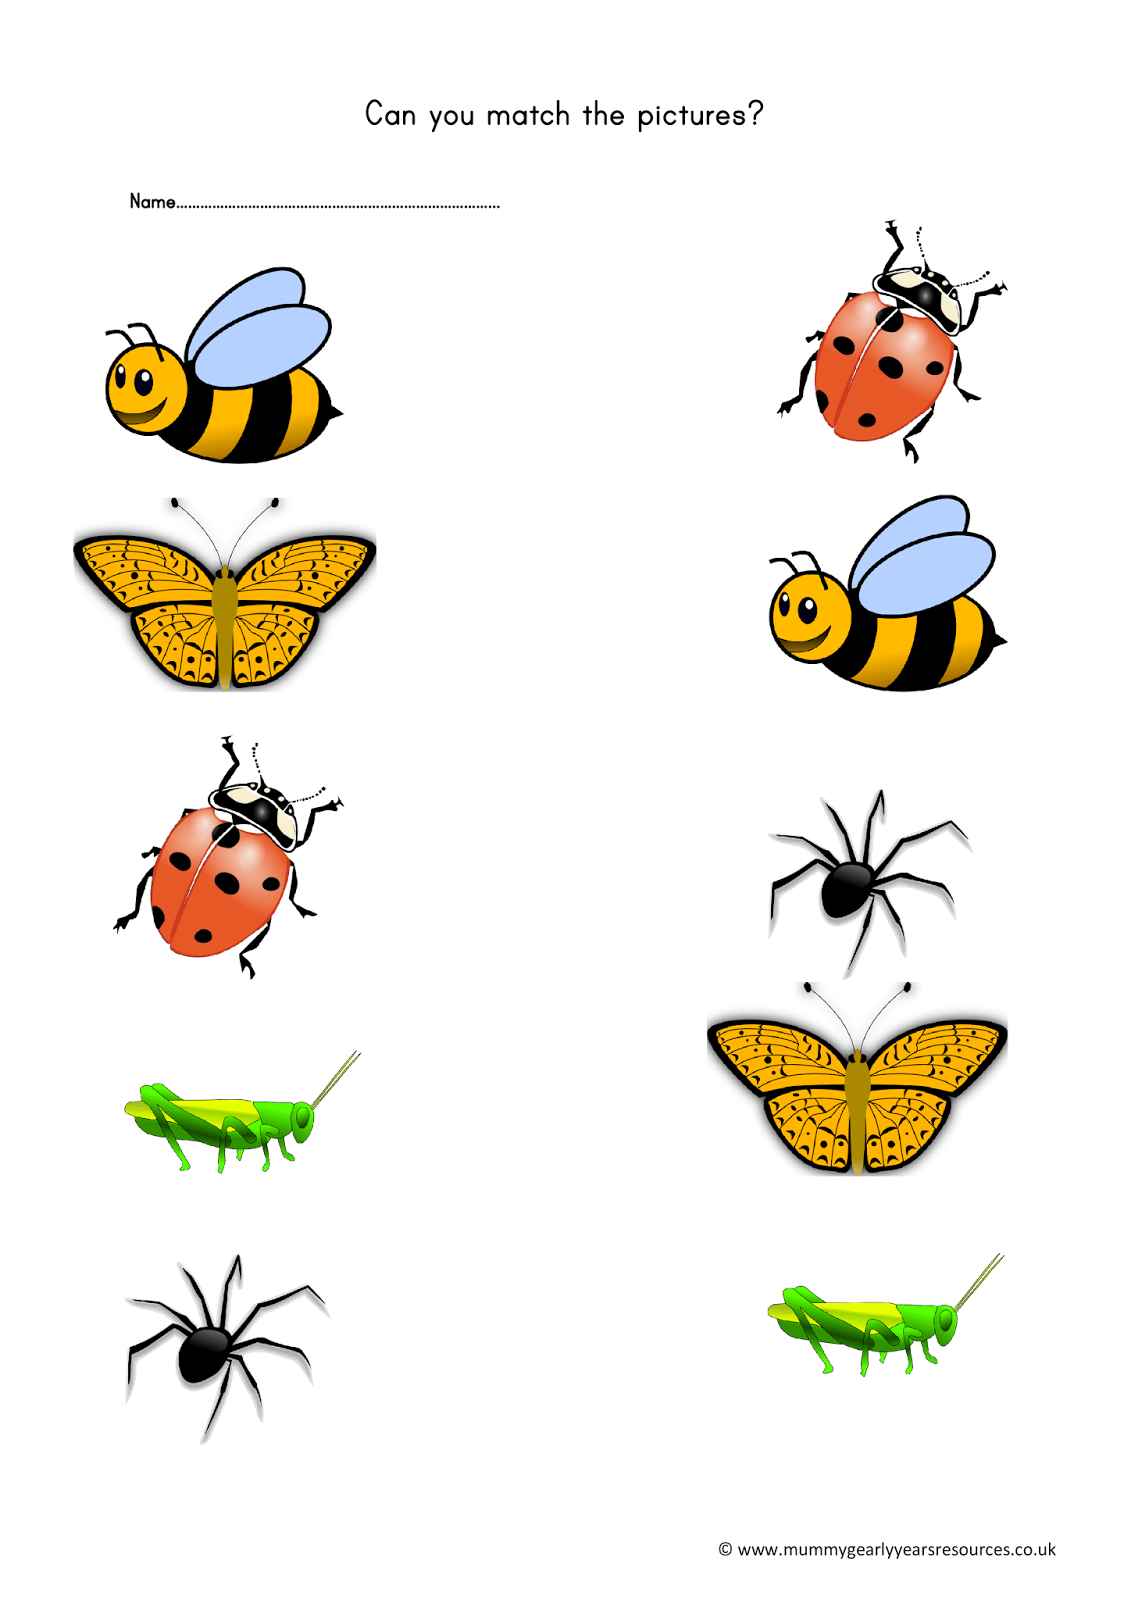 Mummy G Early Years Resources Mini Beasts Matching